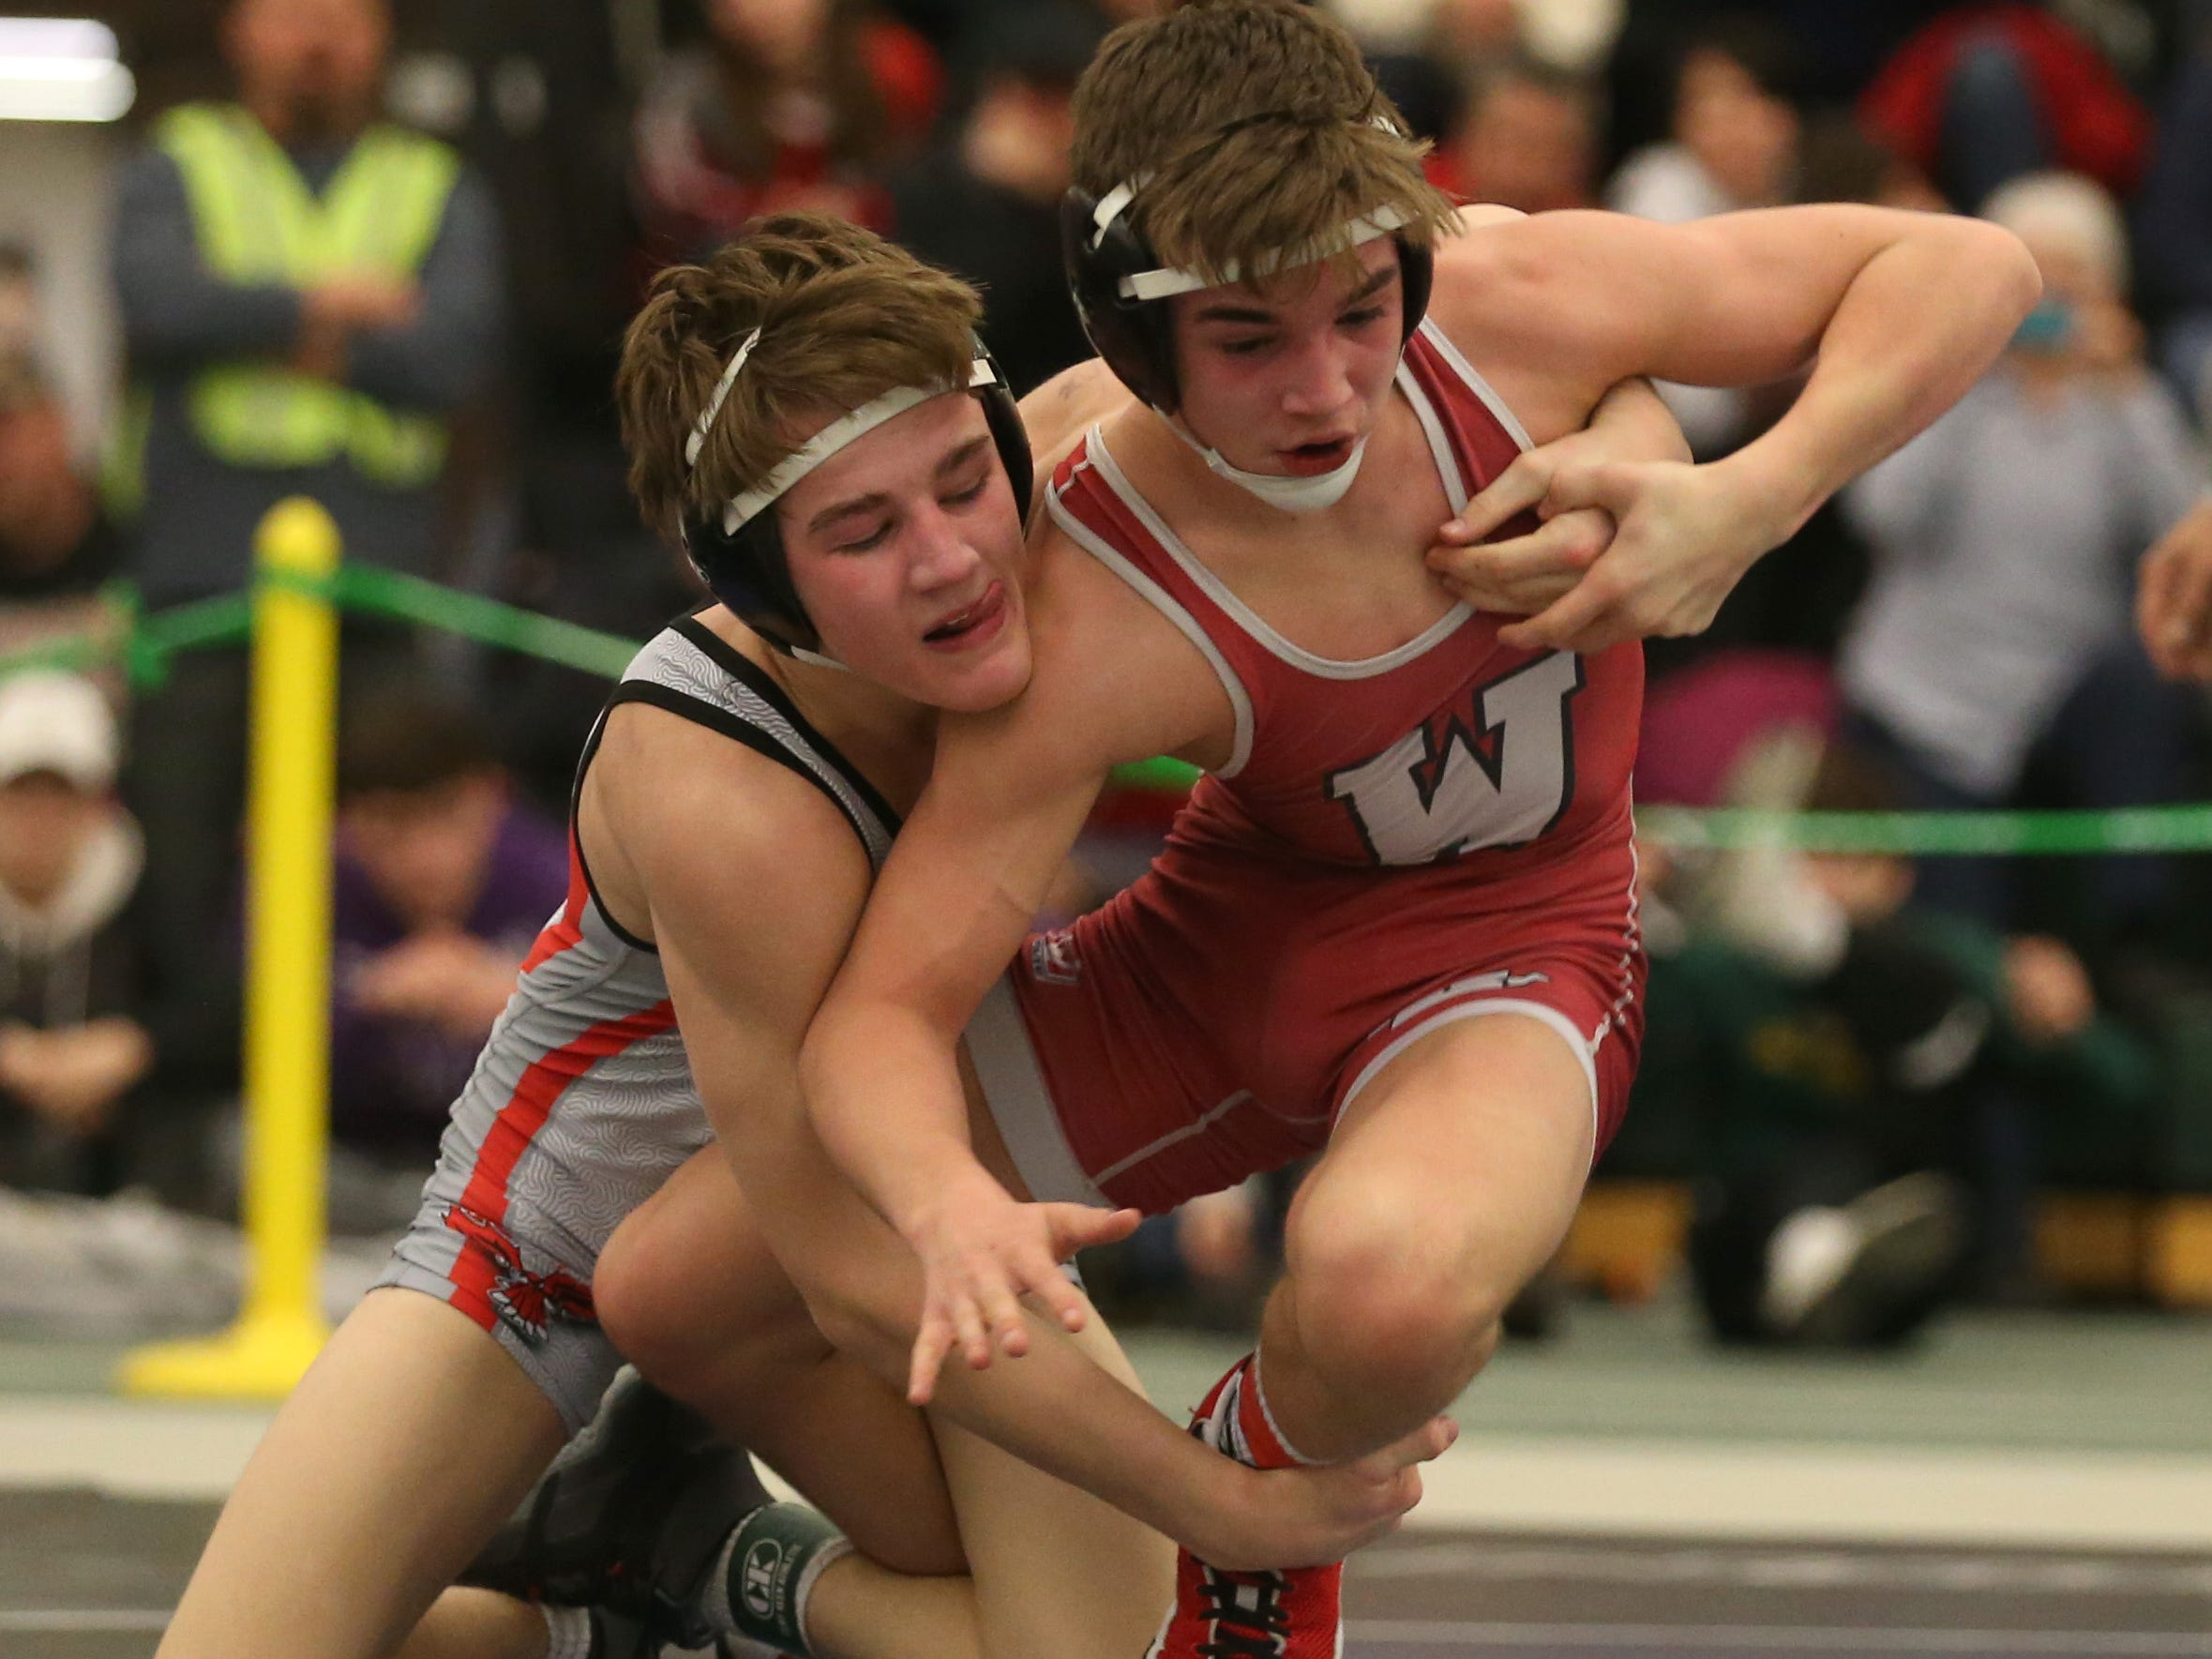 Pal-Mac's Kaleb Burgess, left, tires to tie up Carter Schubert, Williamson/Marion/Sodus, in their Division 2, 120 pound match at the 52nd Annual State Wrestling Qualifier at the College at Brockport Saturday, Feb. 9, 2019.